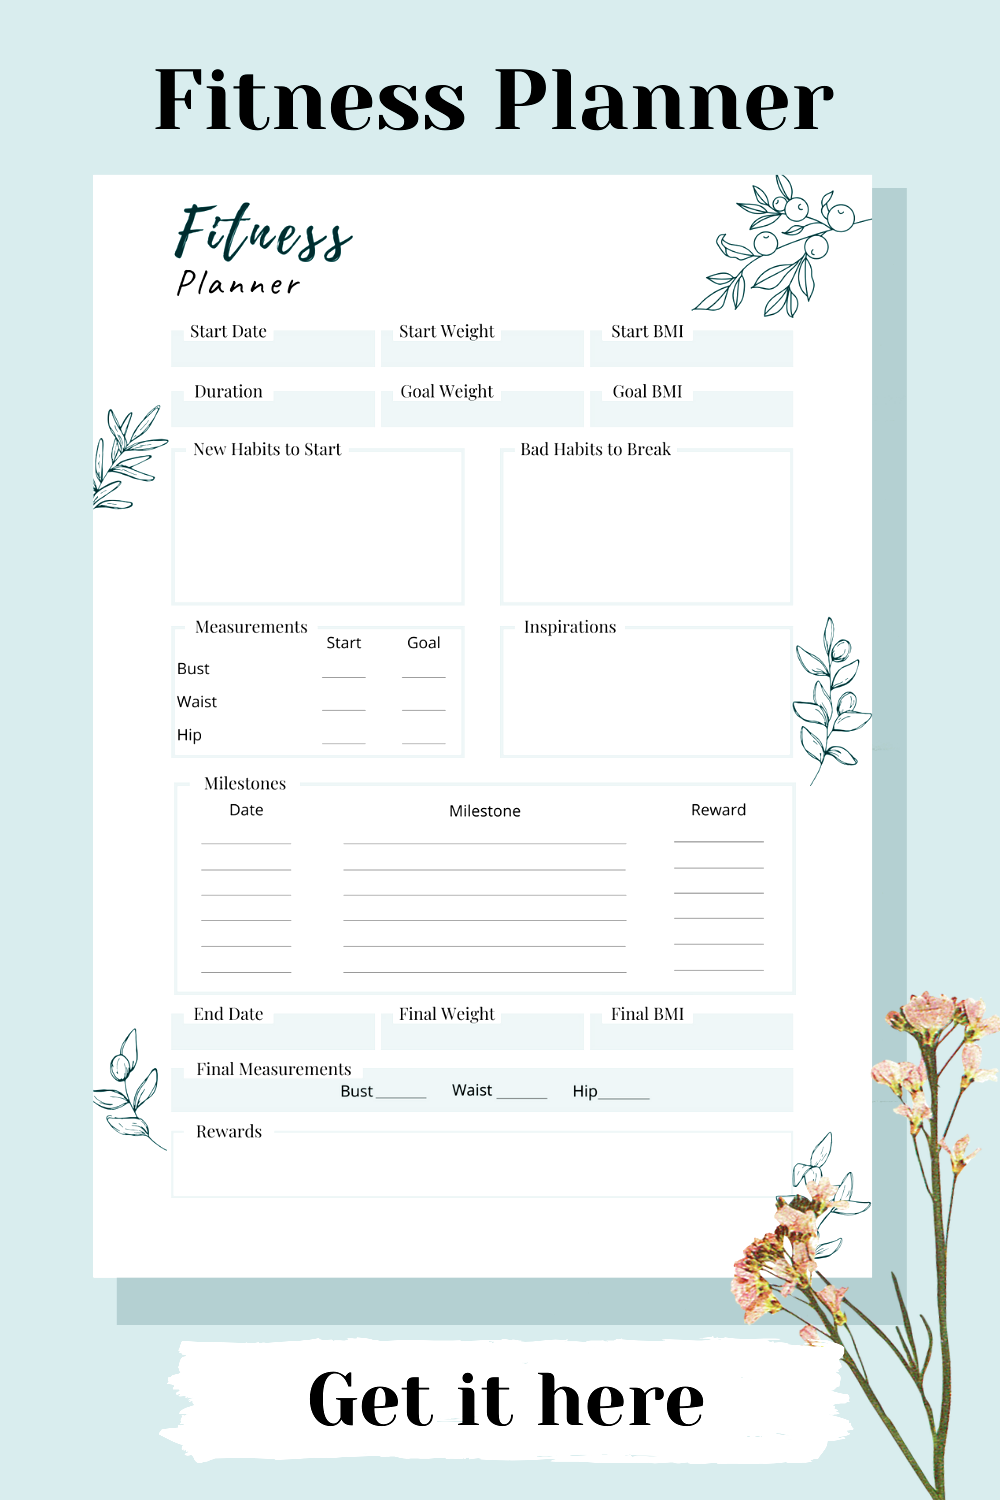 This printable fitness health planner has changed my life! I can plan my weekly and daily workout ro...